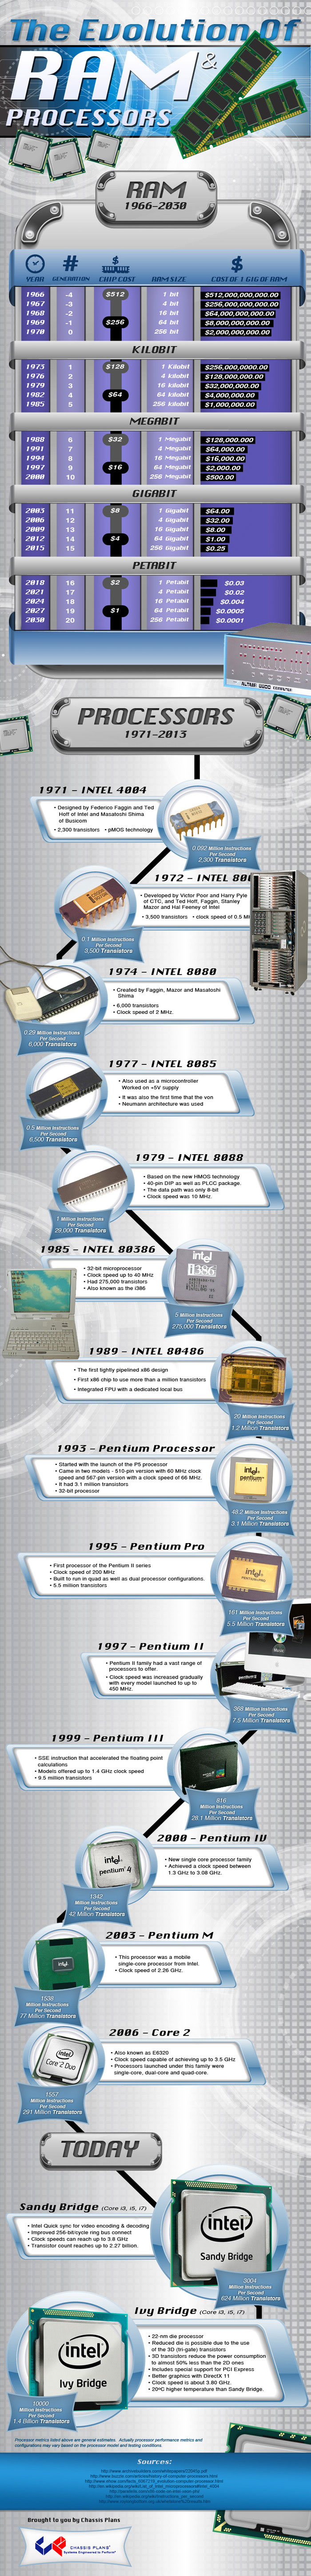 Ram and Processor History-Infographic